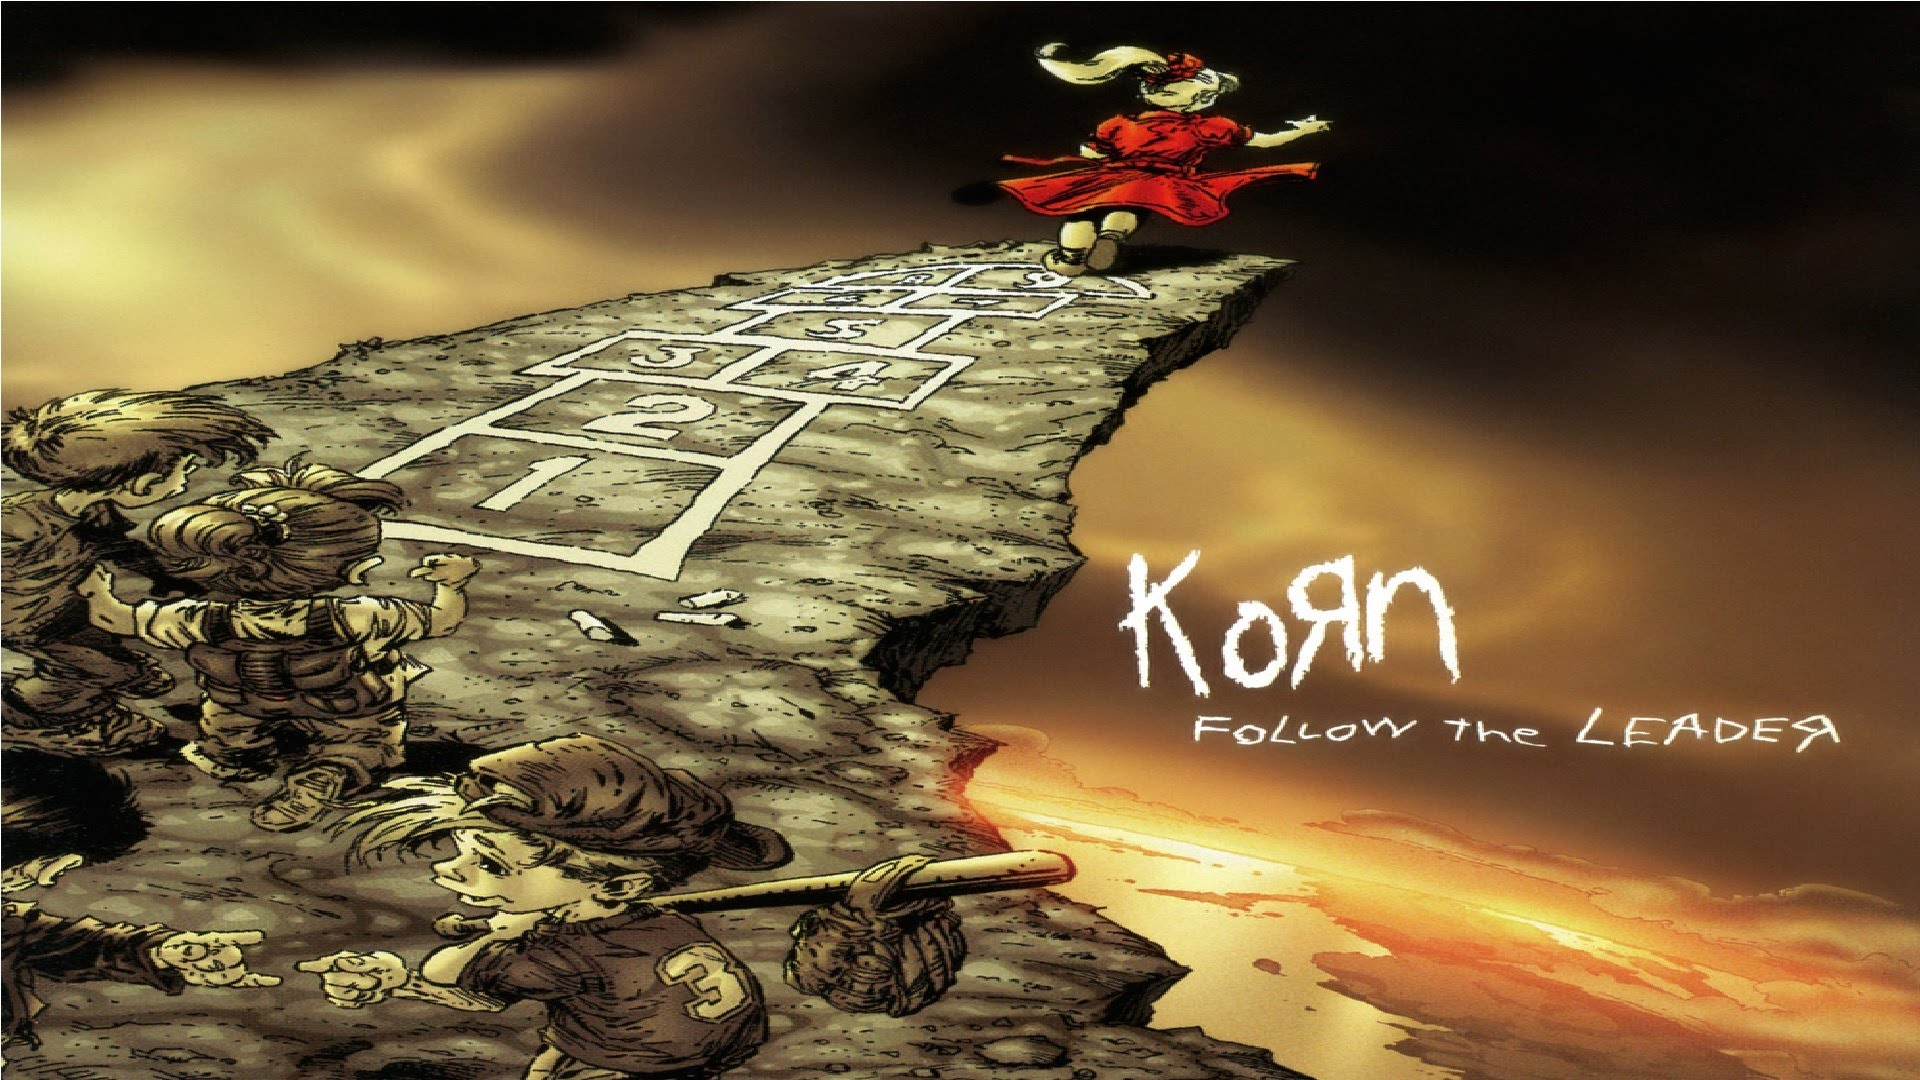 KoRn announce 'Follow the Leader' 20th anniversary shows | Metal Insider